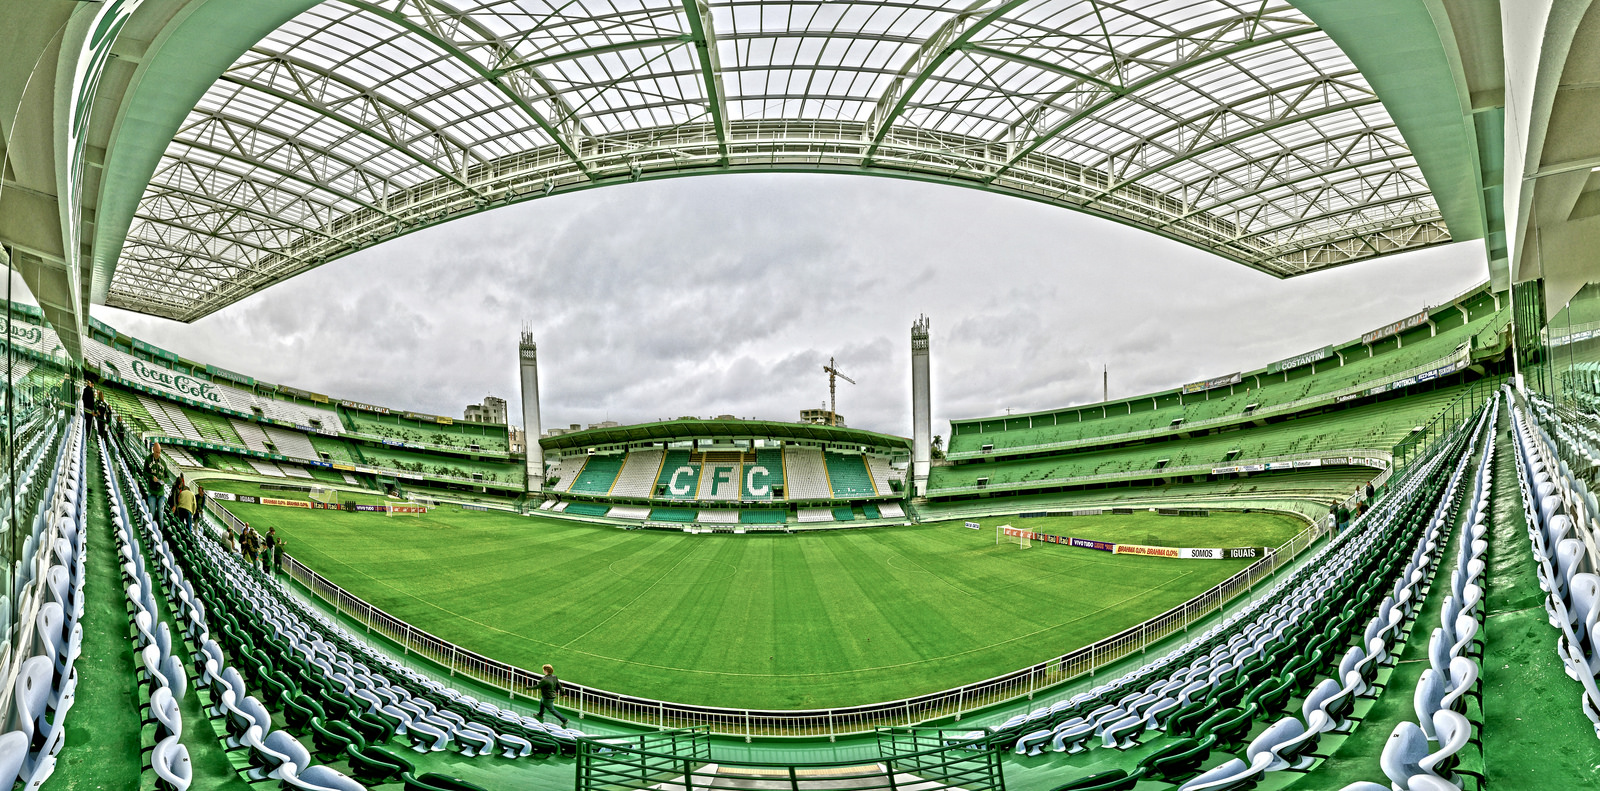 Coritiba VS Flamengo RJ ( BETTING TIPS, Match Preview & Expert Analysis )